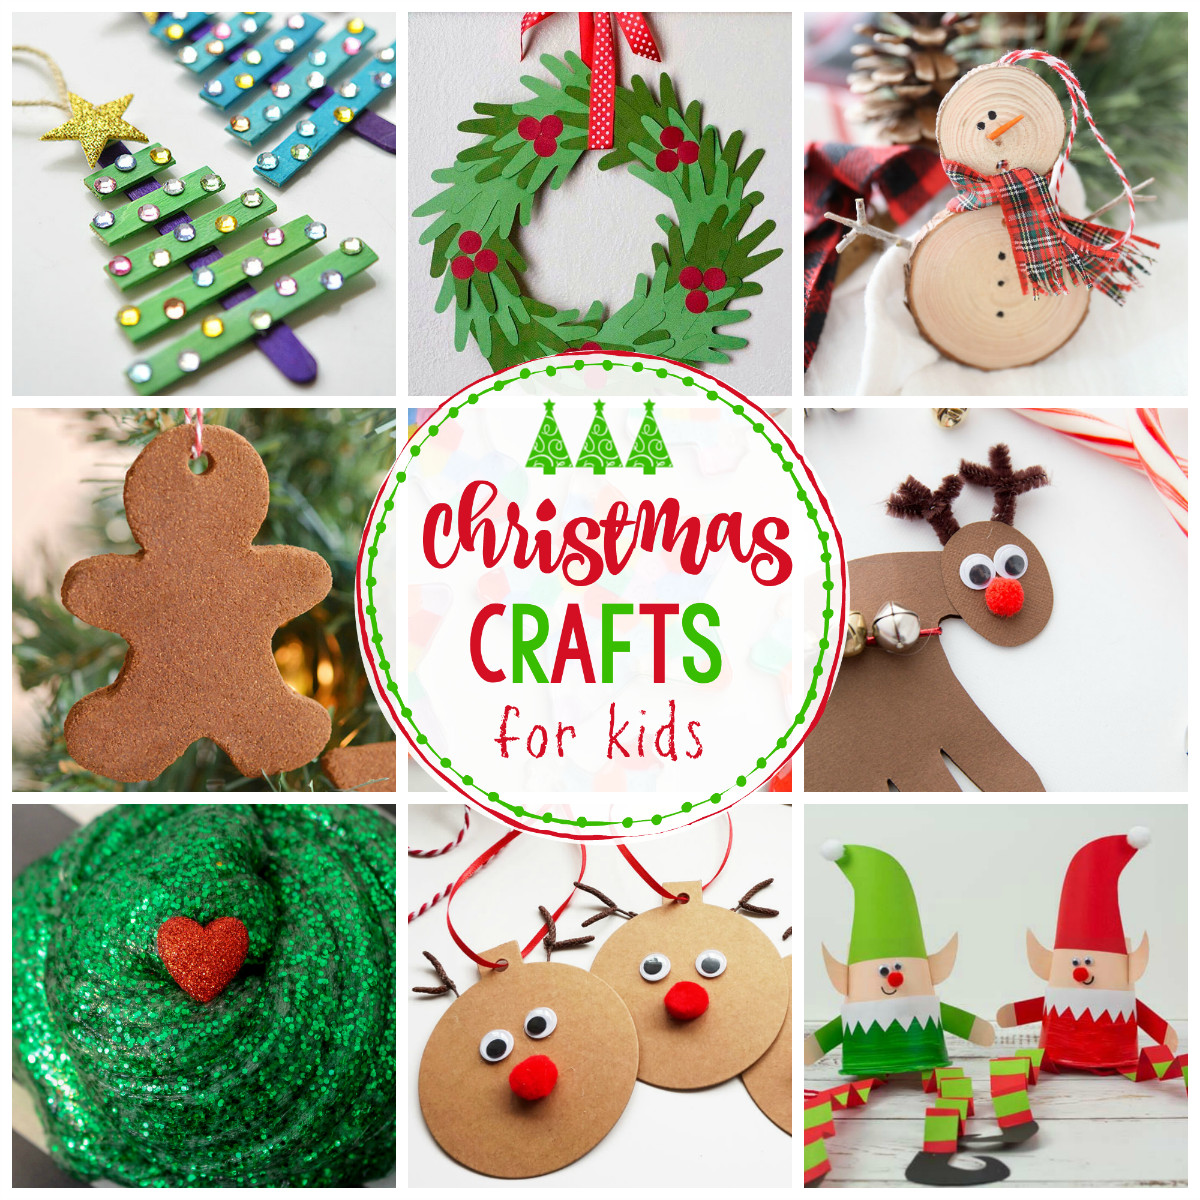 Best ideas about Crafts For Kids . Save or Pin 25 Easy Christmas Crafts for Kids Crazy Little Projects Now.